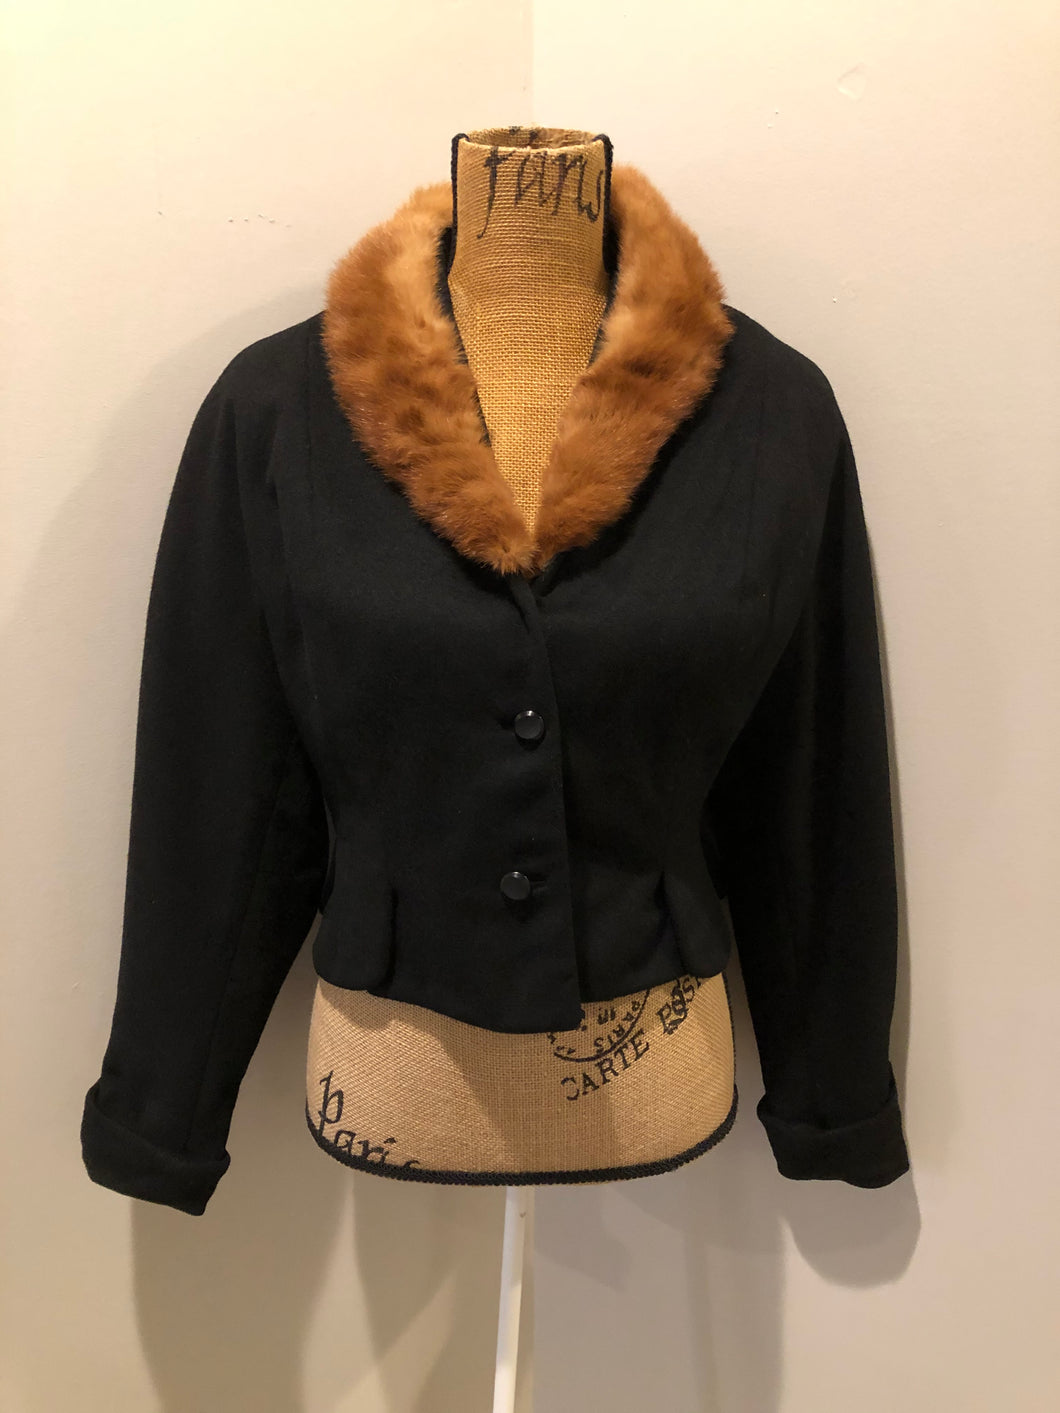 Vintage 60's Cropped Wool Jacket with Fur Collar